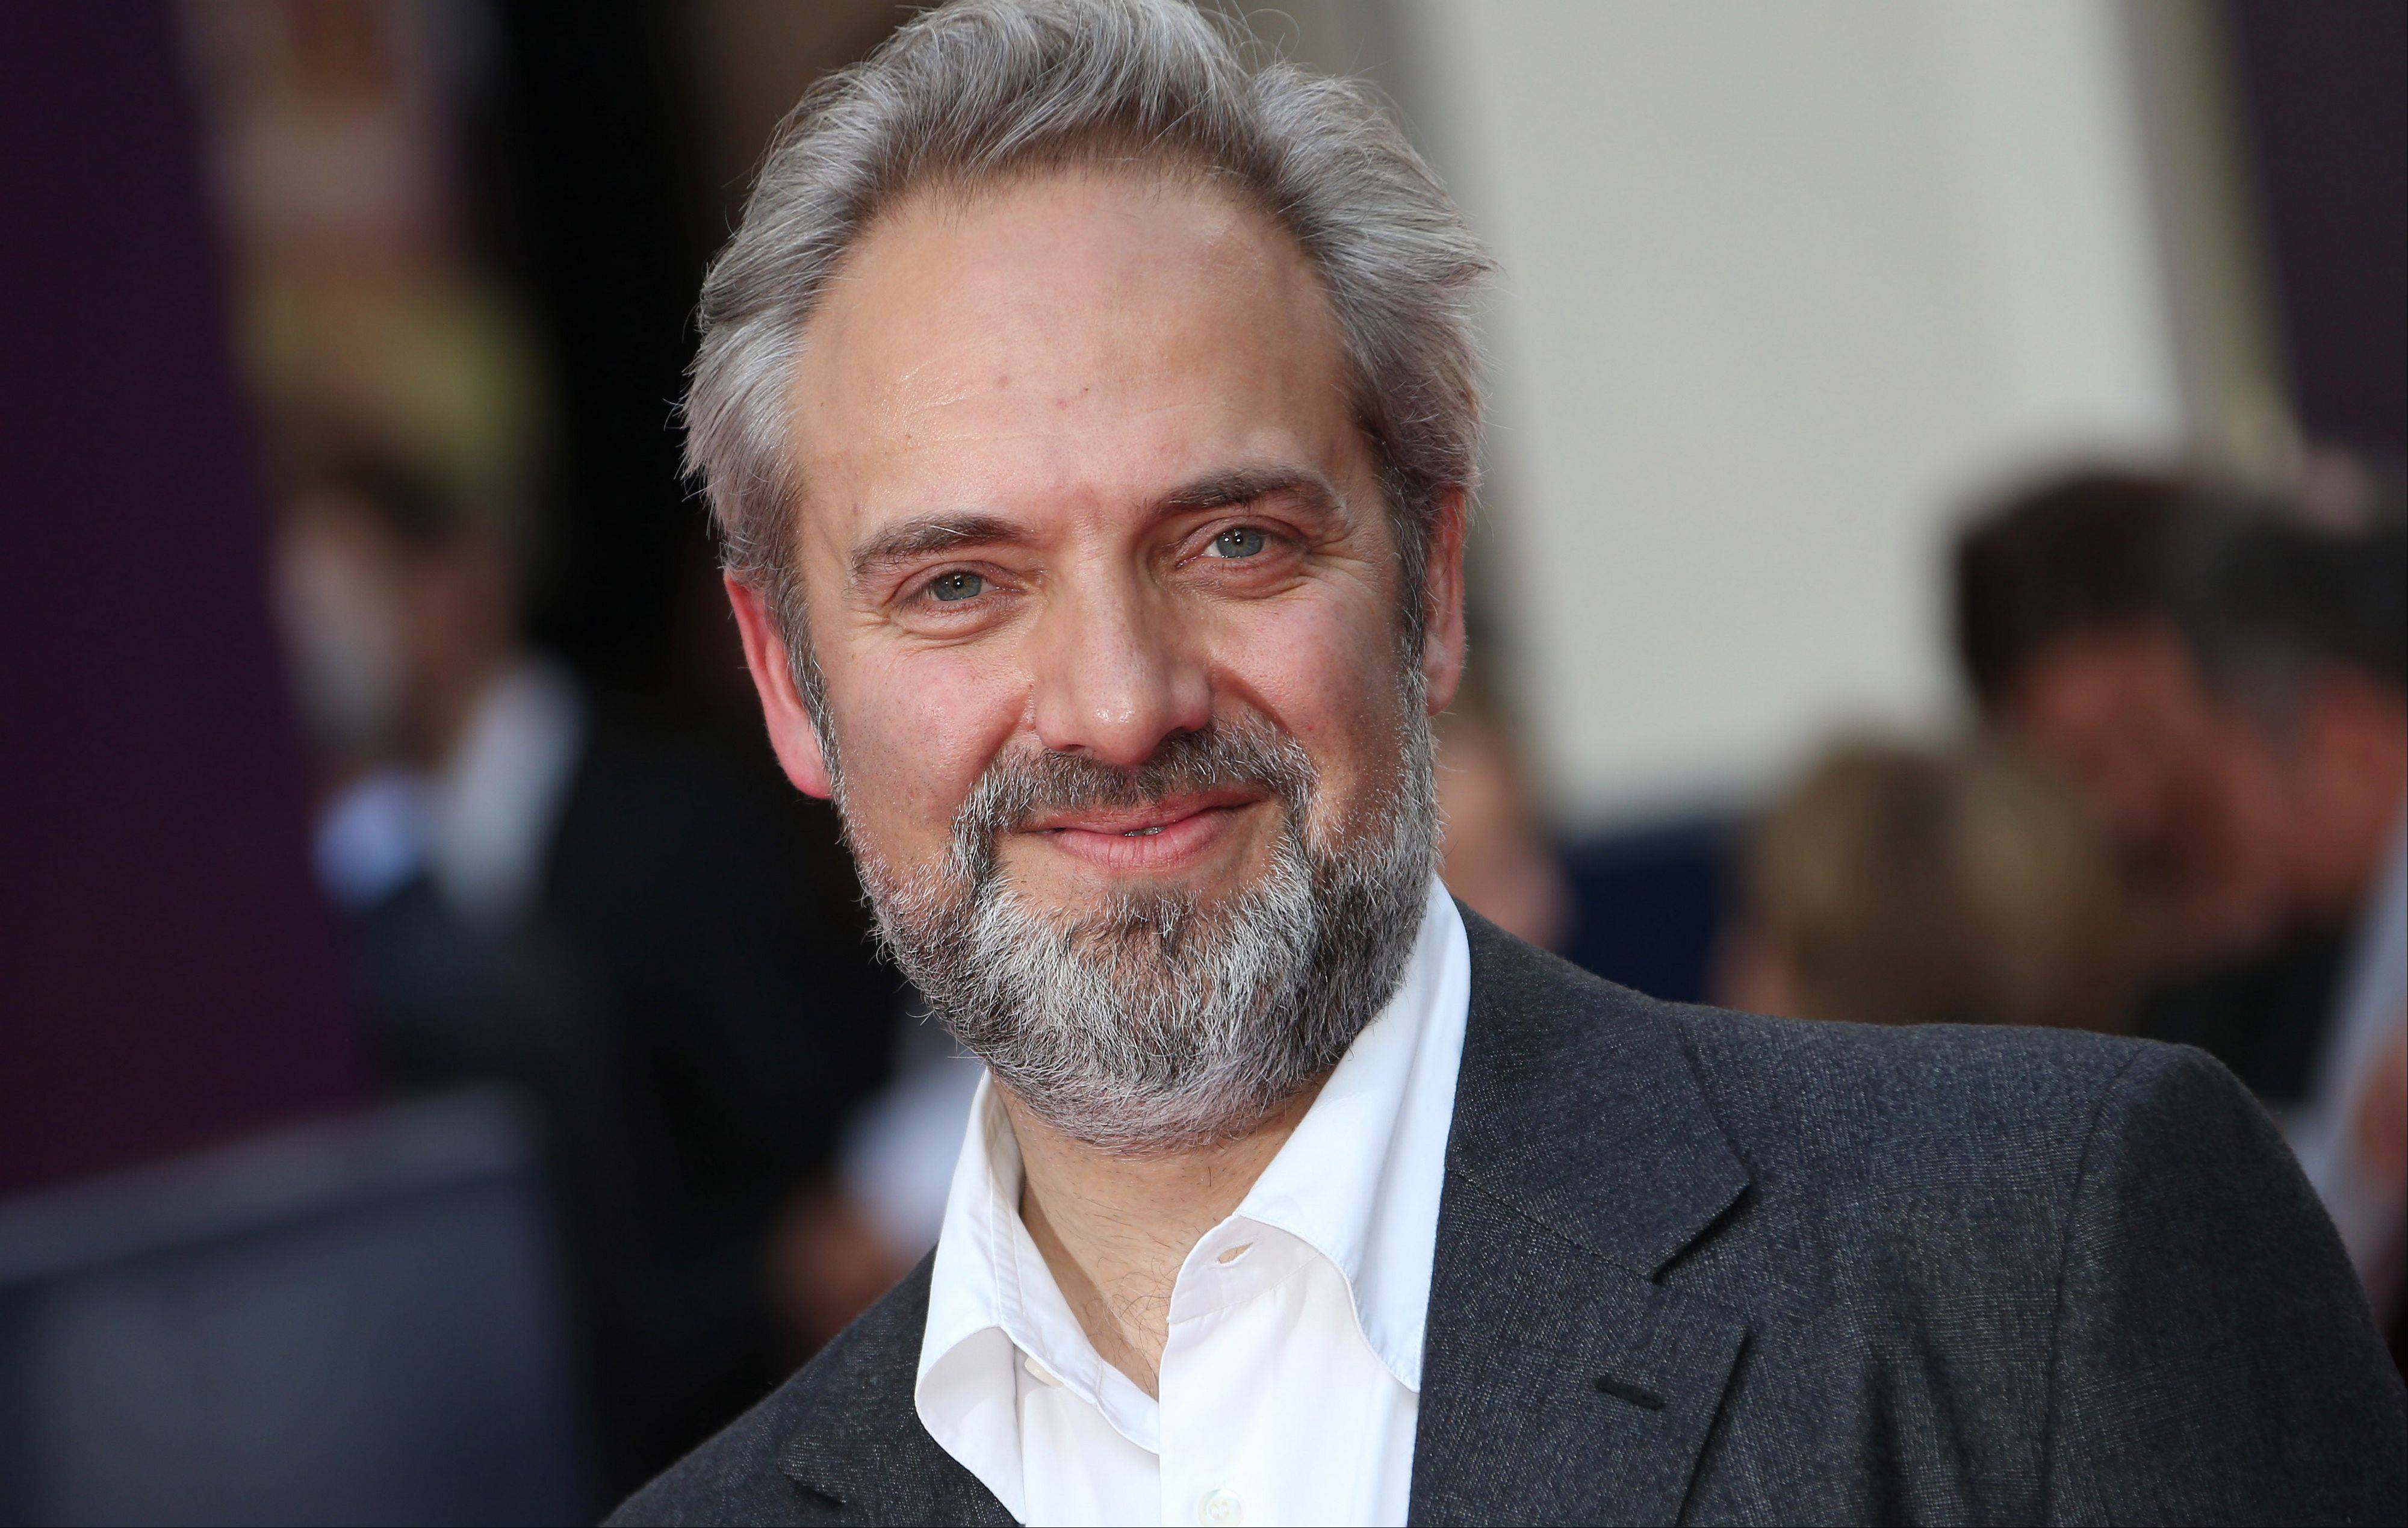 Director Sam Mendes is coming back to direct another James Bond film with Daniel Craig following the enormously successful �Skyfall.�